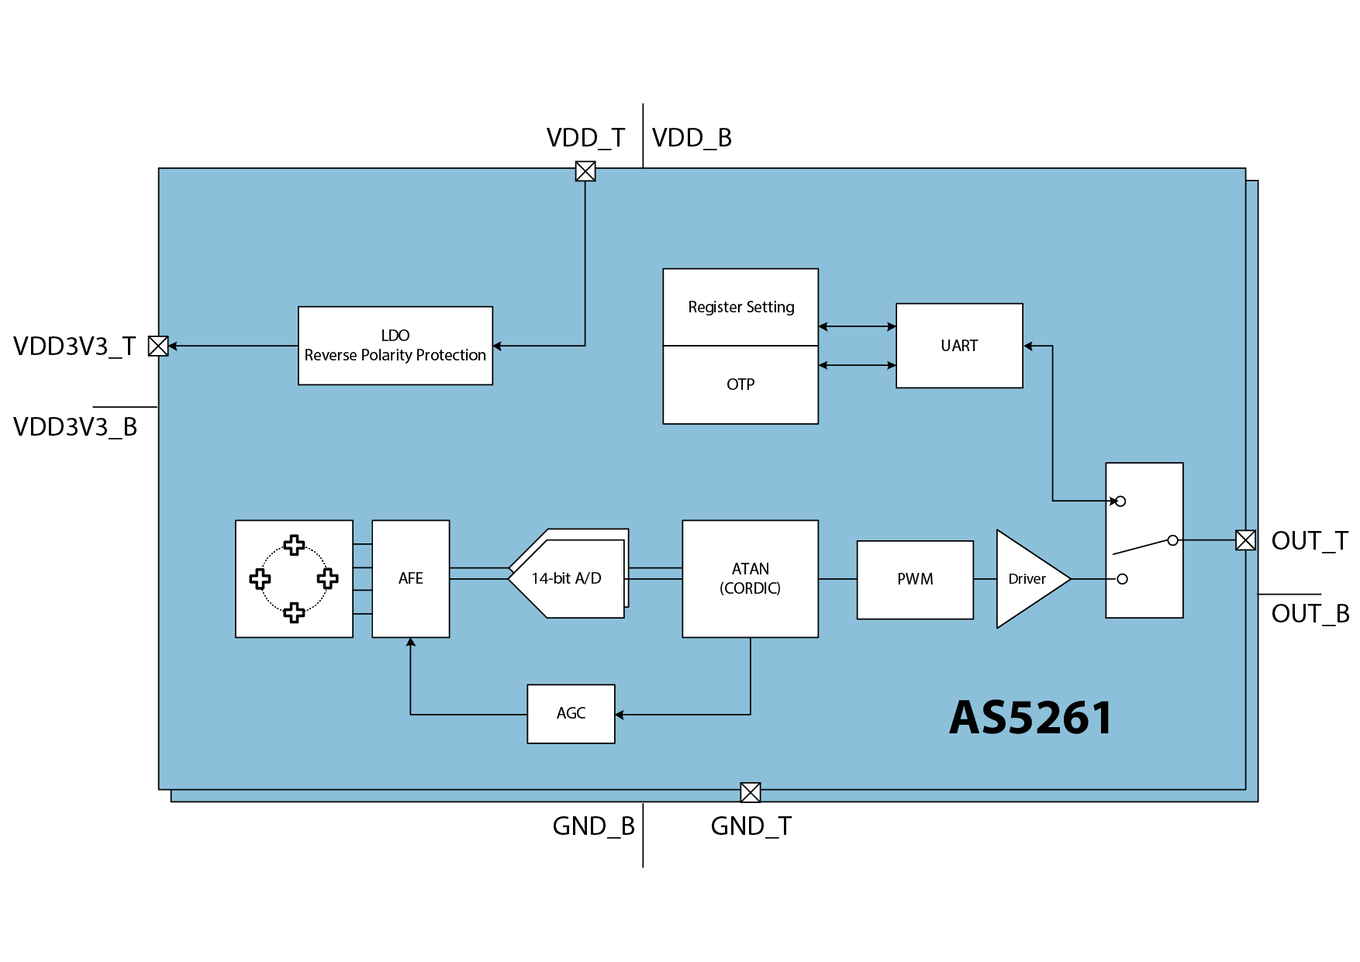 As5261 Ams 360 Degree Camera Block Diagram Pictures This Product Suits For The Following Applications